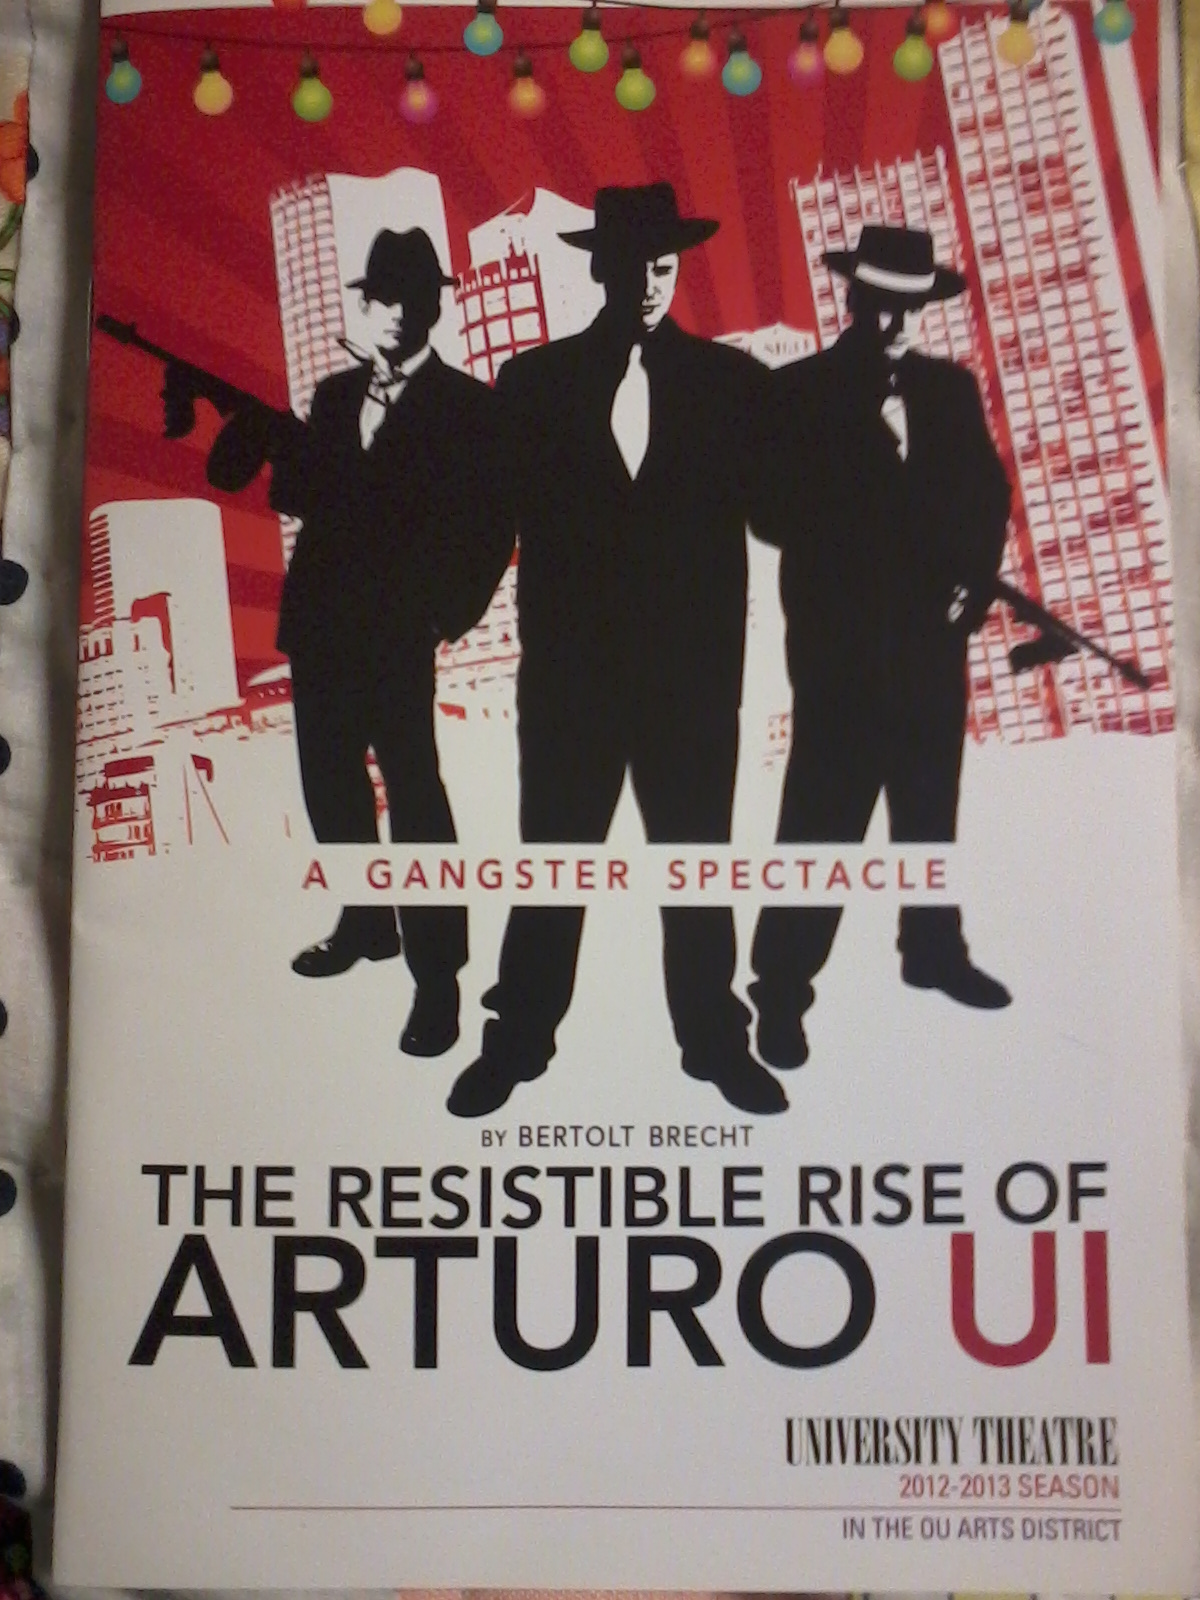 using brechts technique in the play the resistible rise of arturo ui